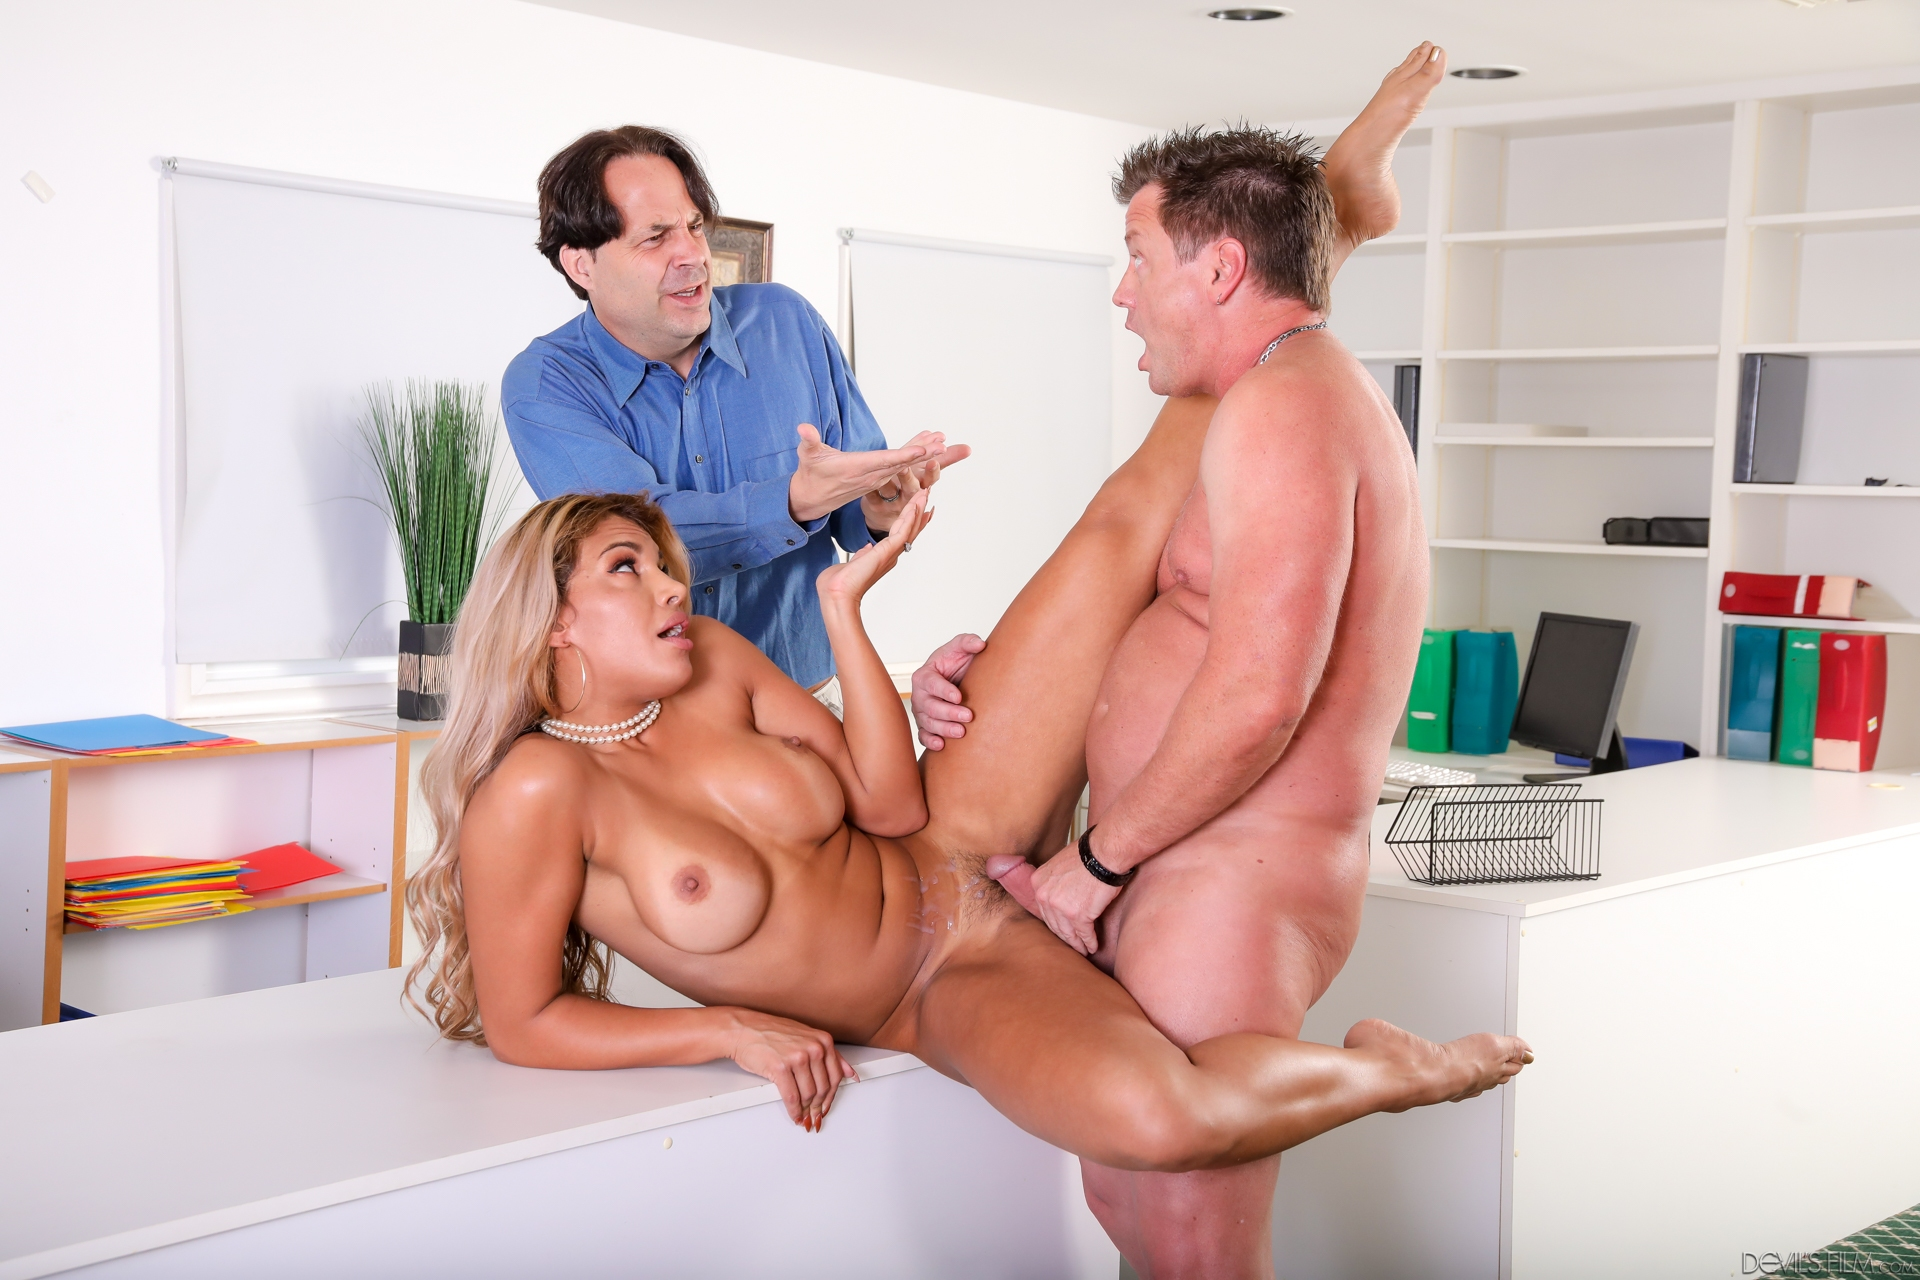 Horny Teen Maid Is Fucking Her Elderly Employer, Instead Of Properly Doing Her Cleaning Job